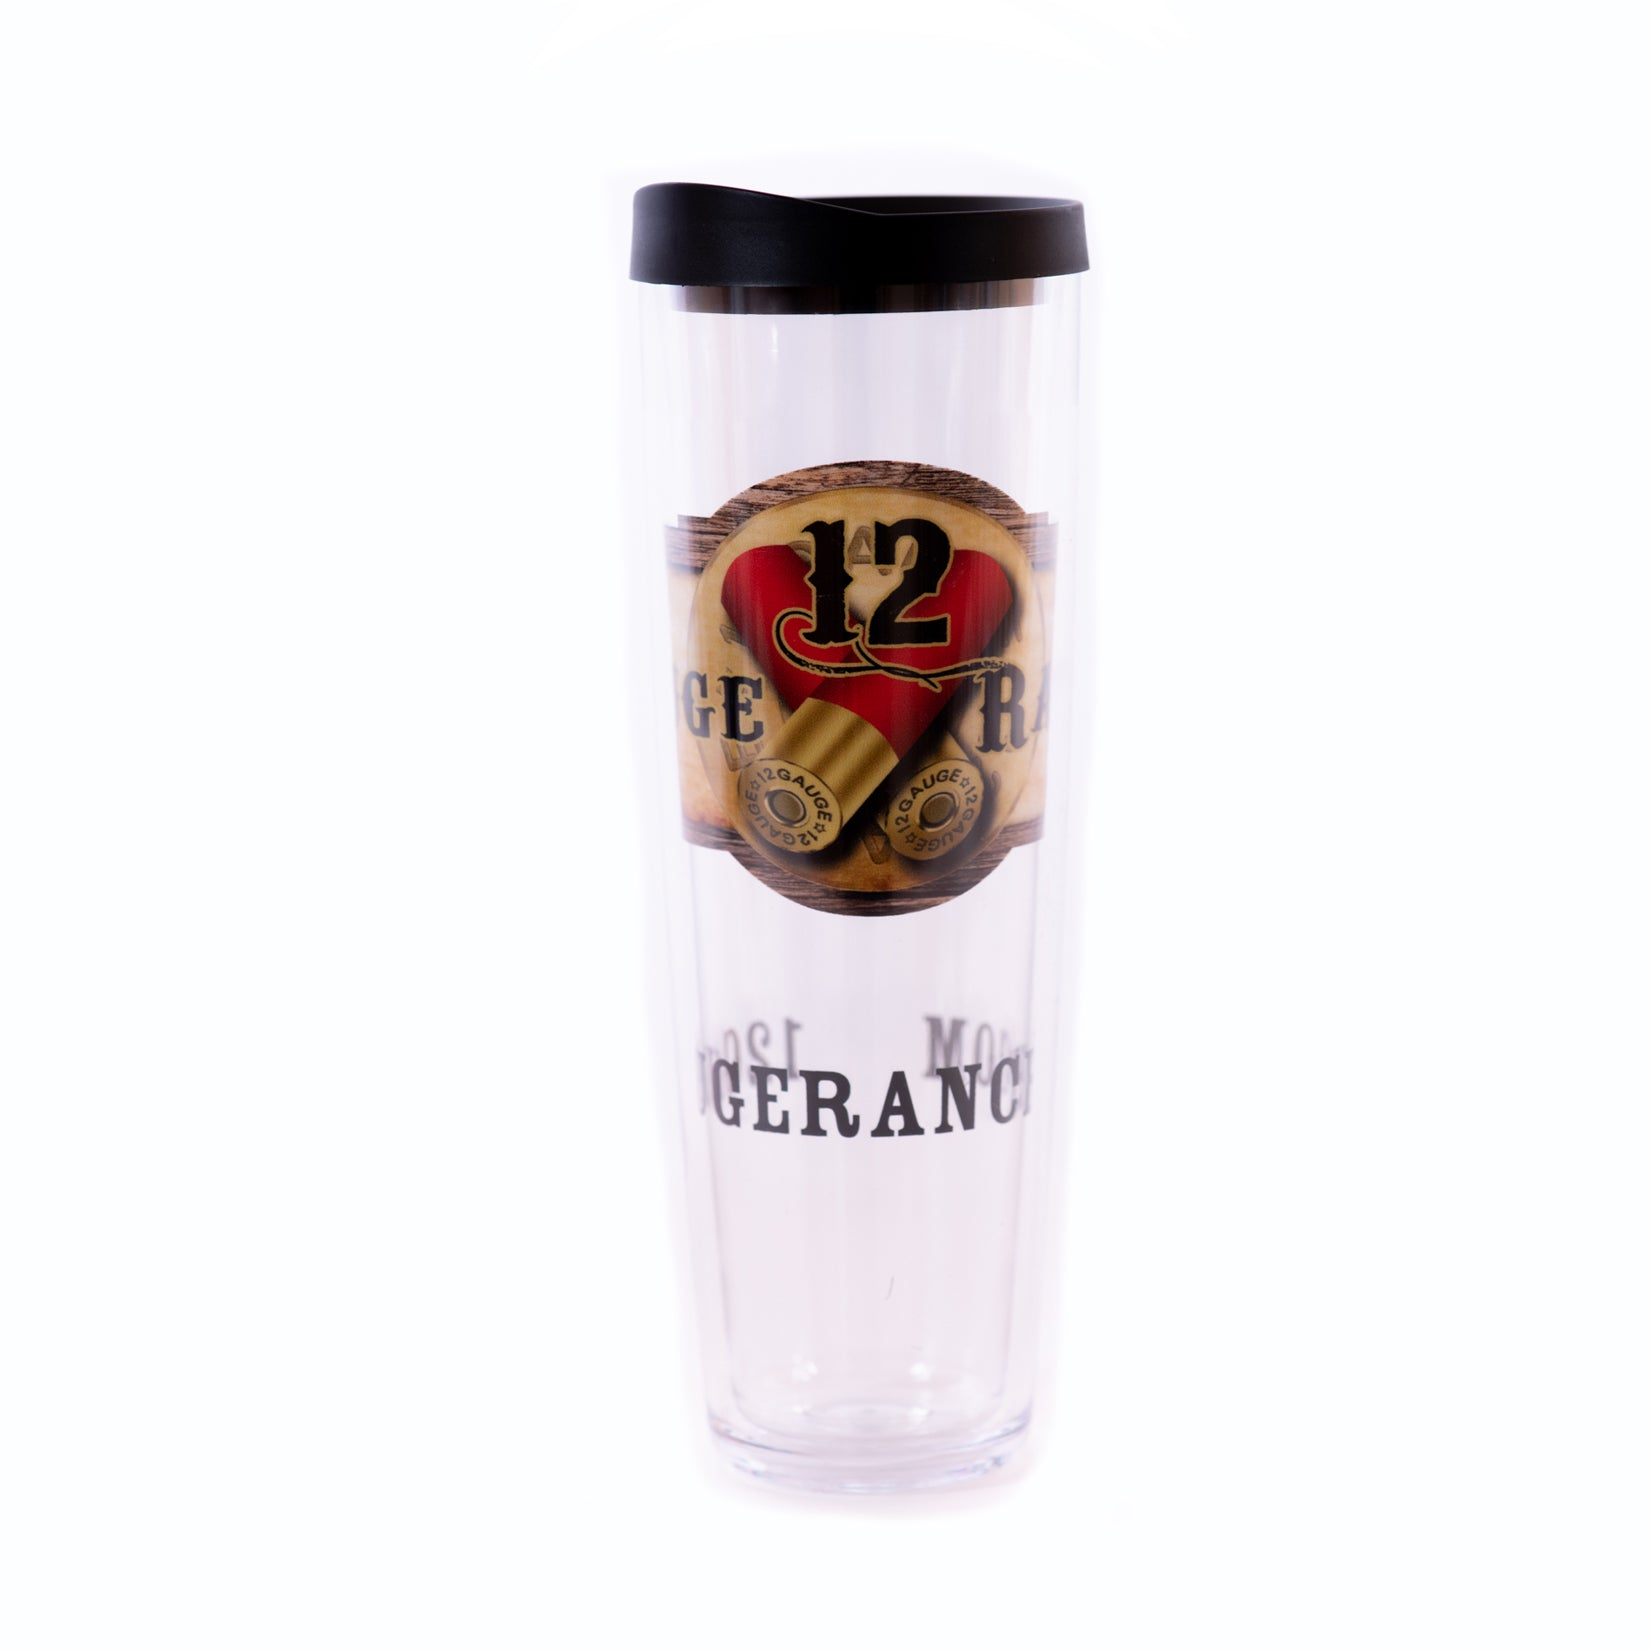 12 Gauge Ranch 24oz Insulated Covo Cup, Accessories, 12 Gauge Ranch, 12 Gauge Ranch Ranch  12 Gauge Ranch